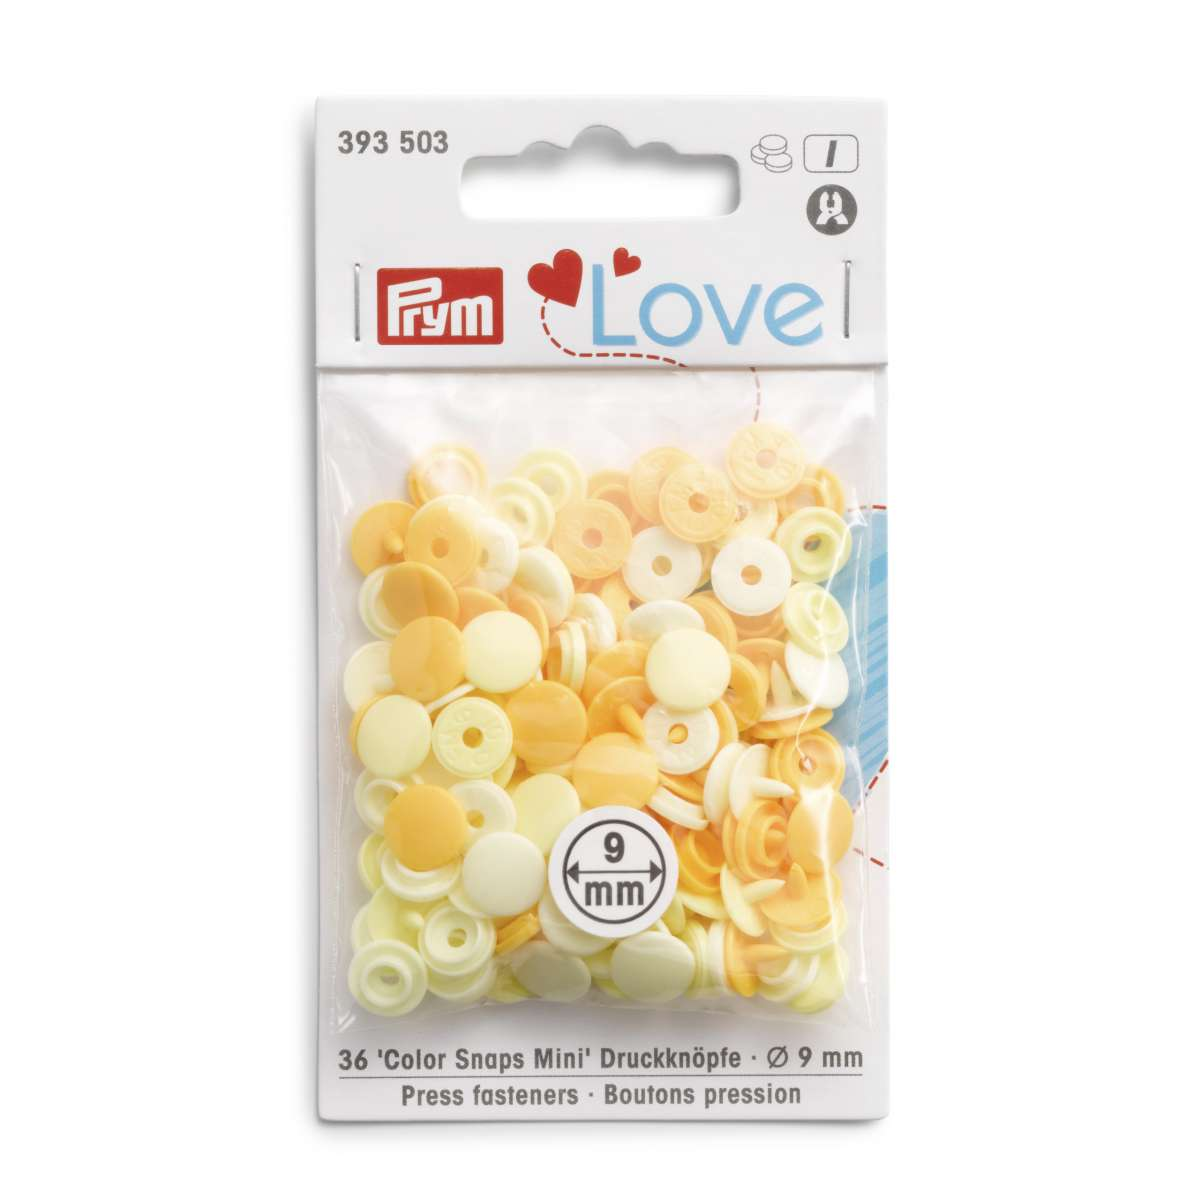 Prym Love Press fasteners Colour Snaps Mini, 9 mm, in shades of pale yellow